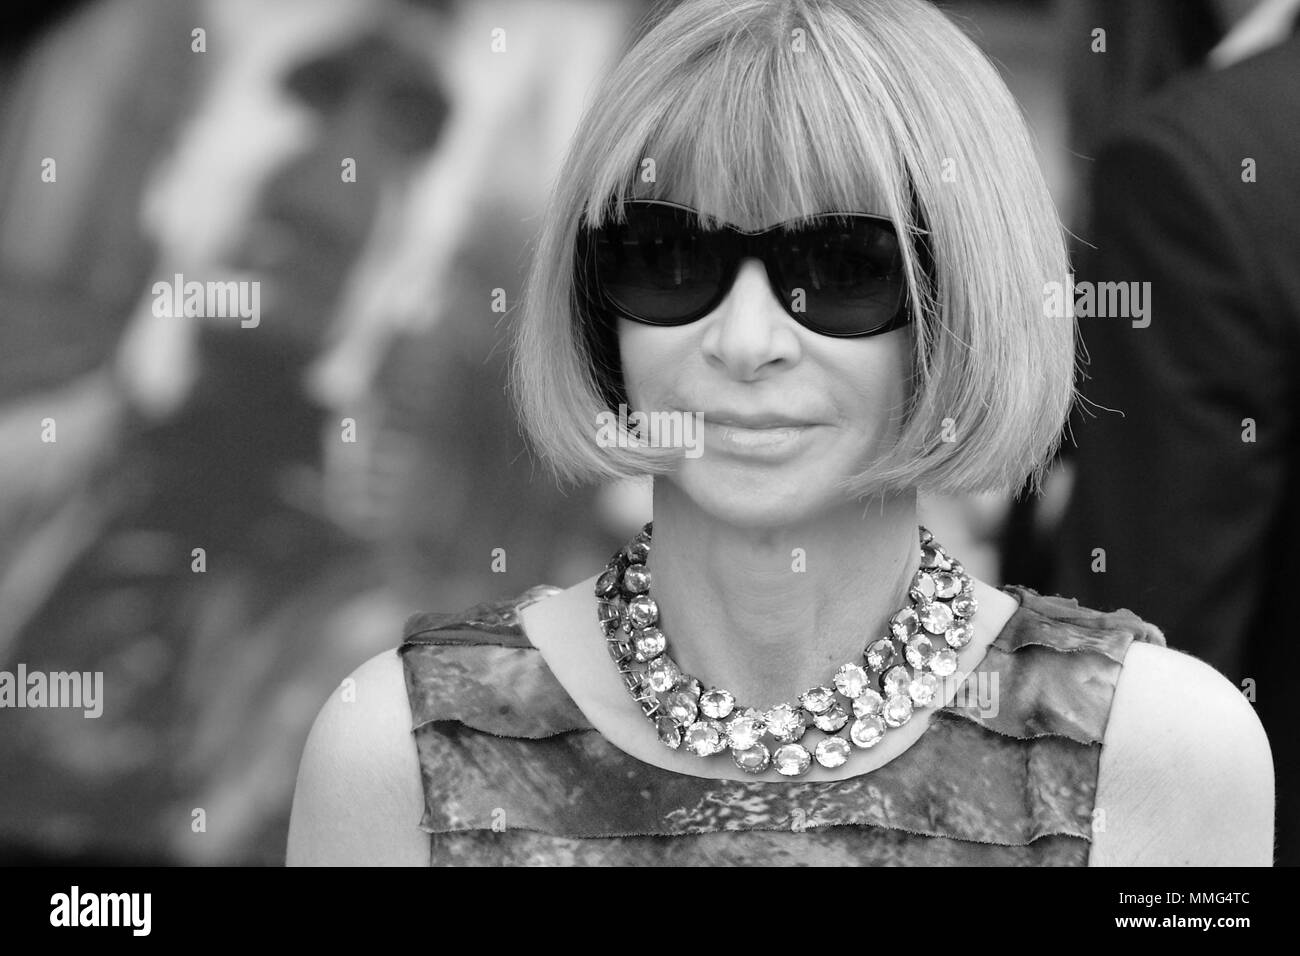 UK - Entertainment - Anna Wintour at the UK Film Premiere of HARRY POTTER AND THE DEATHLY HALLOWS - PART 2, Trafalgar Square, London 7 July 2011 - Stock Image